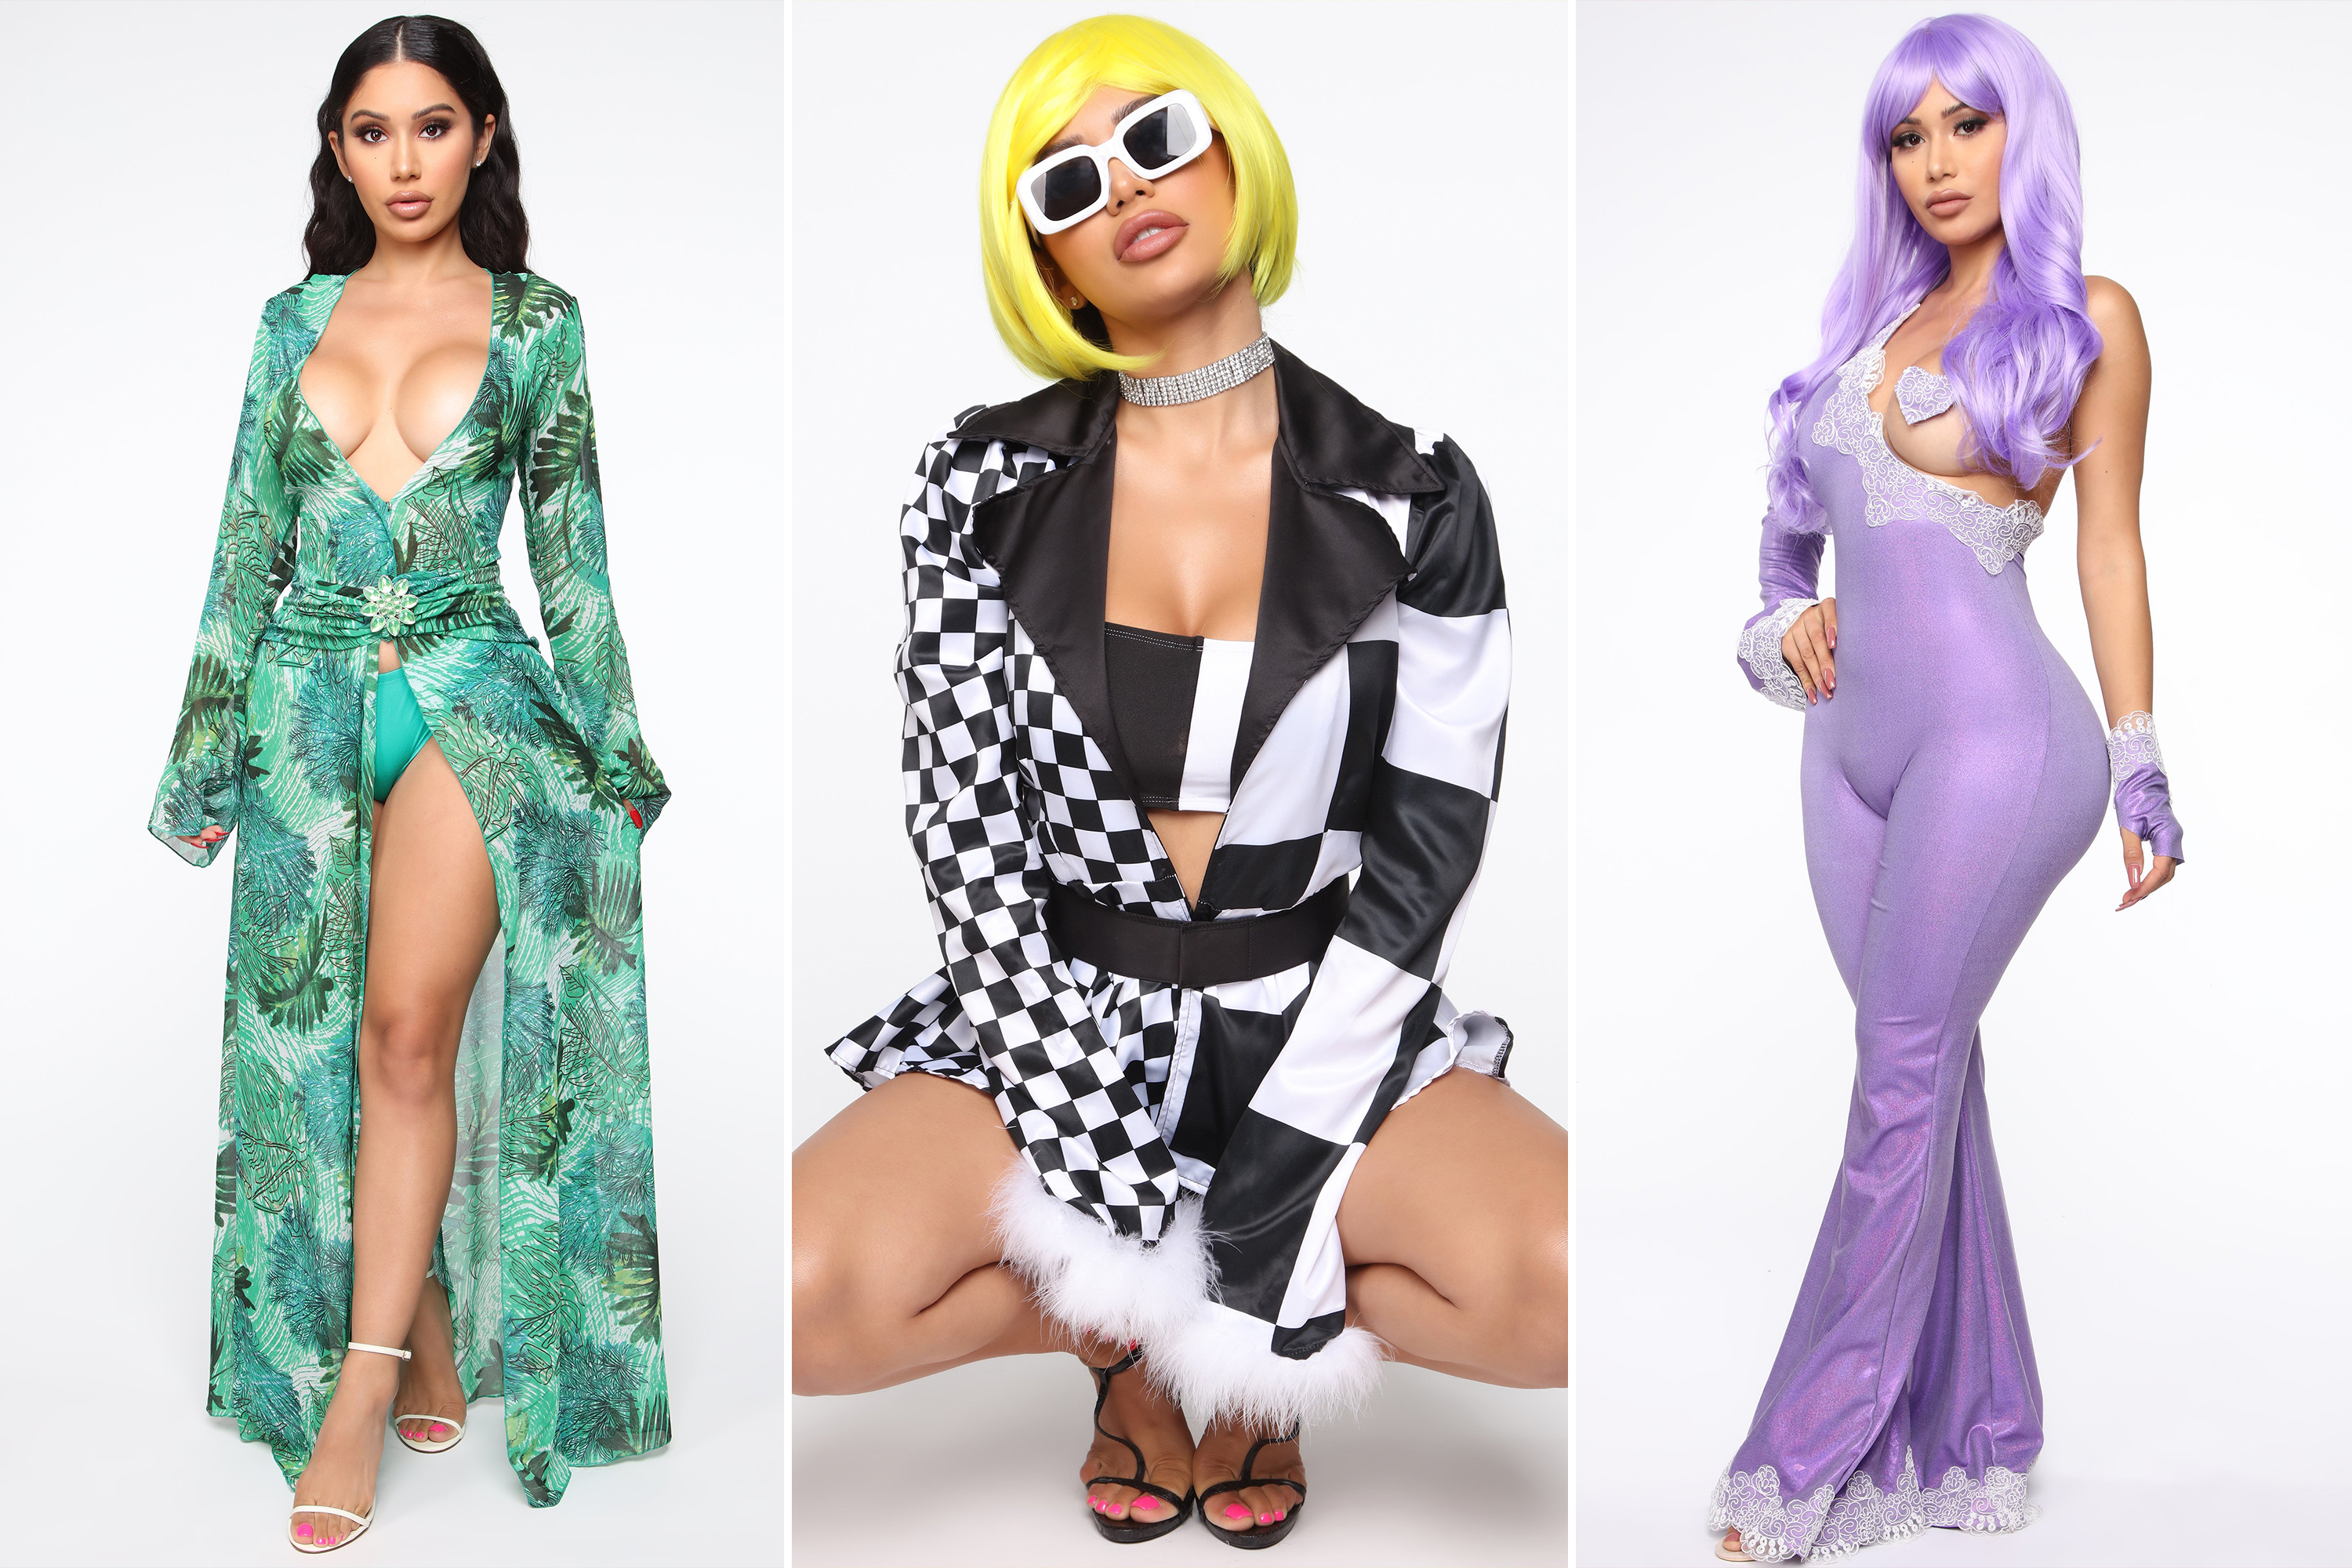 Jlo Halloween Costume 2020 Fashion Nova's celebrity Halloween costumes inspired by Jennifer